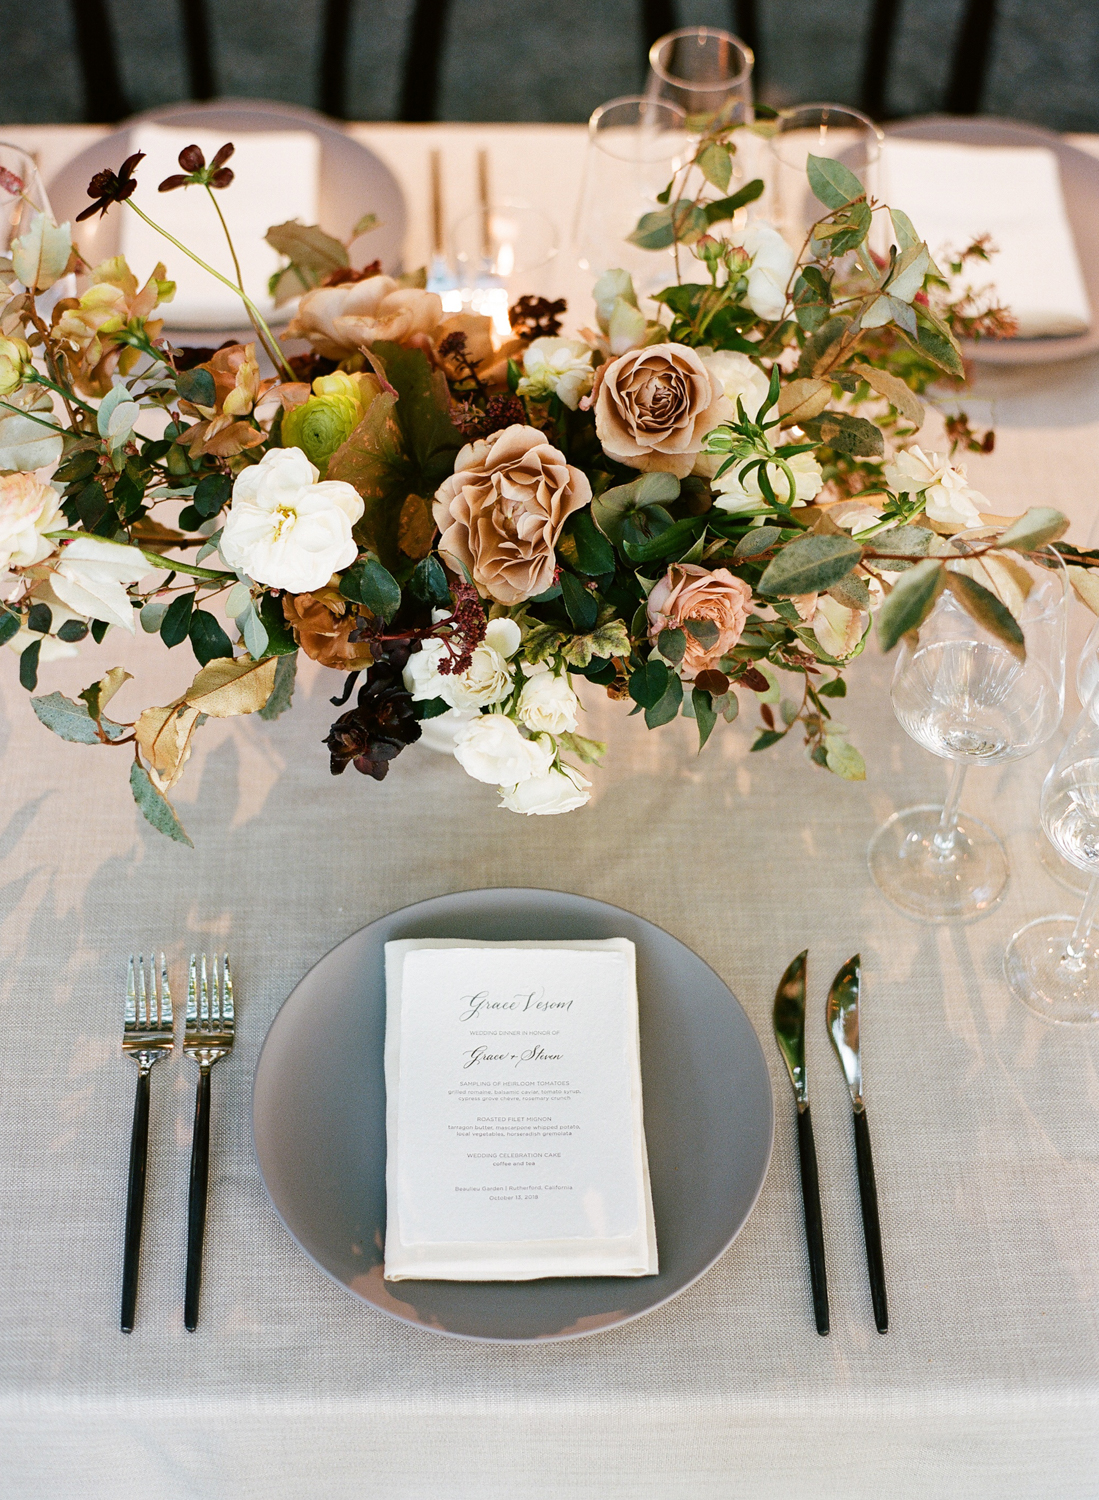 letterpressed menus with placement cards on reception table